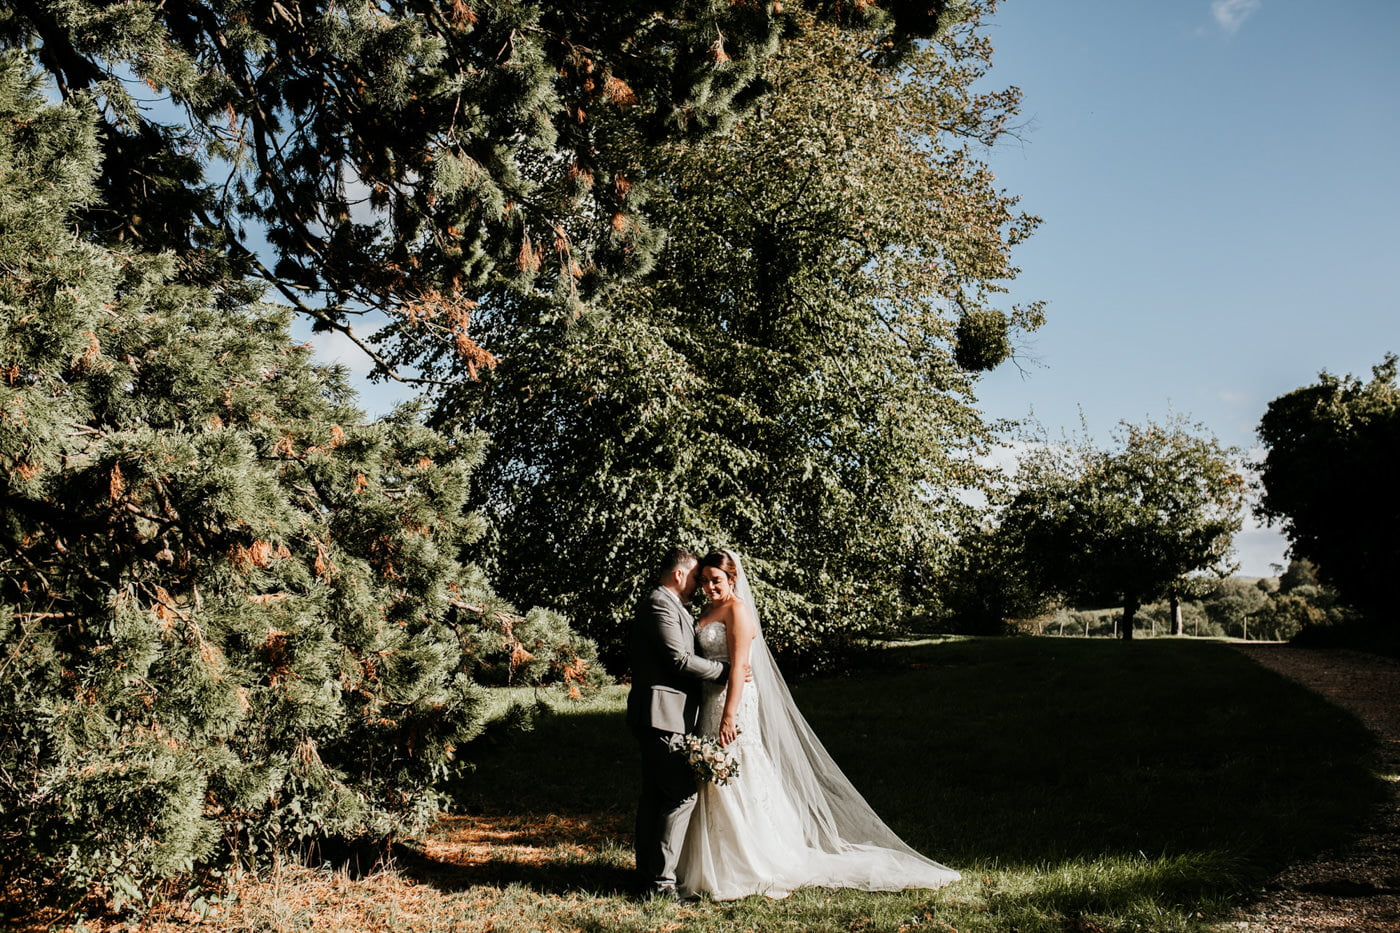 Leanne and Scott / Elmhay Park, Somerset 48